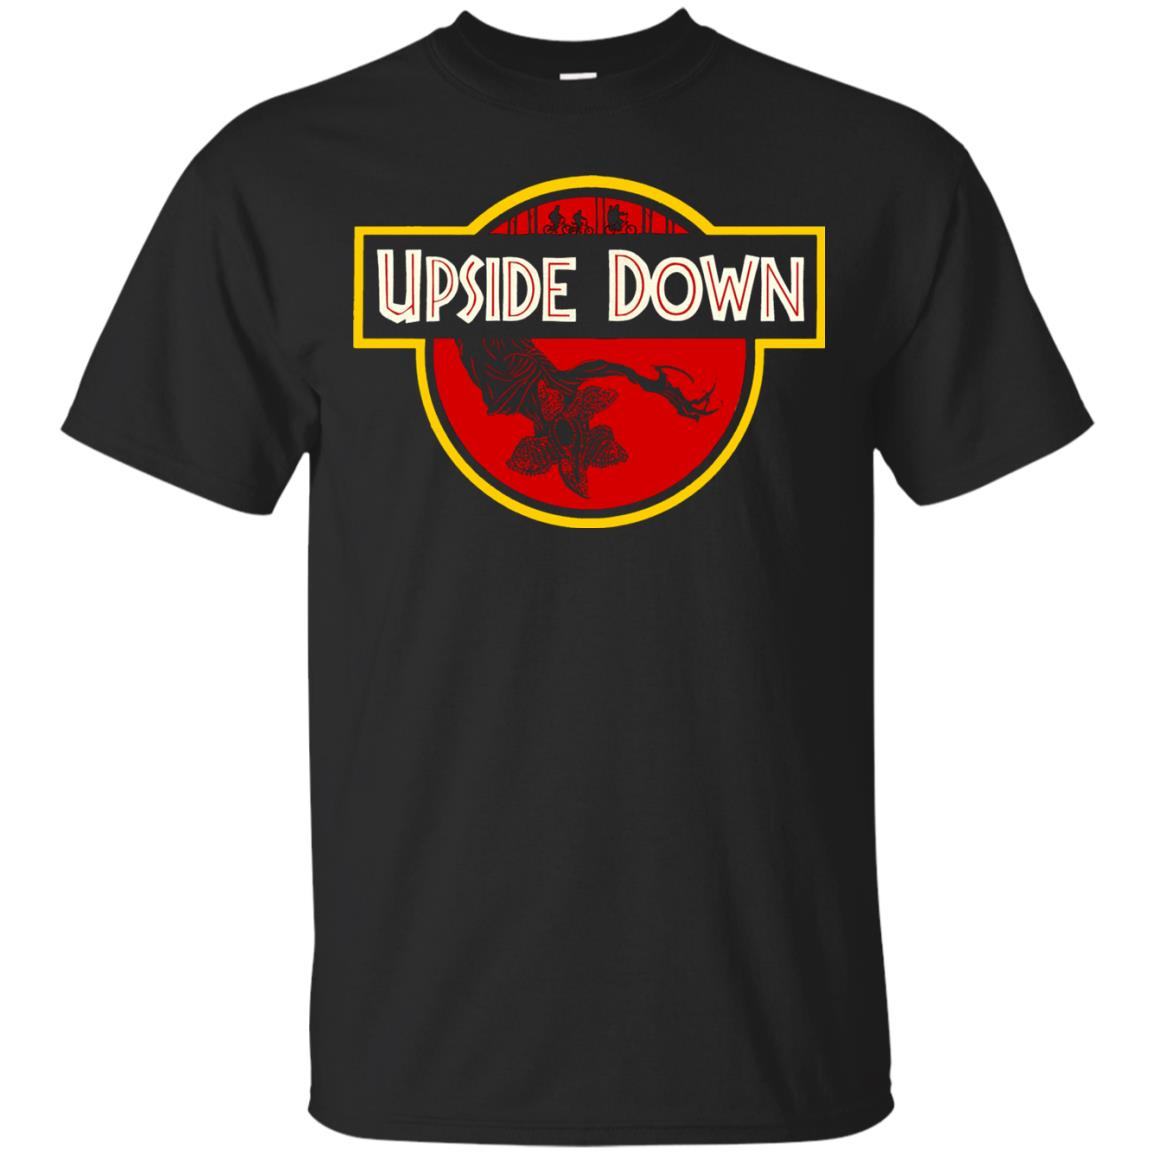 Upside Down T-shirt - black